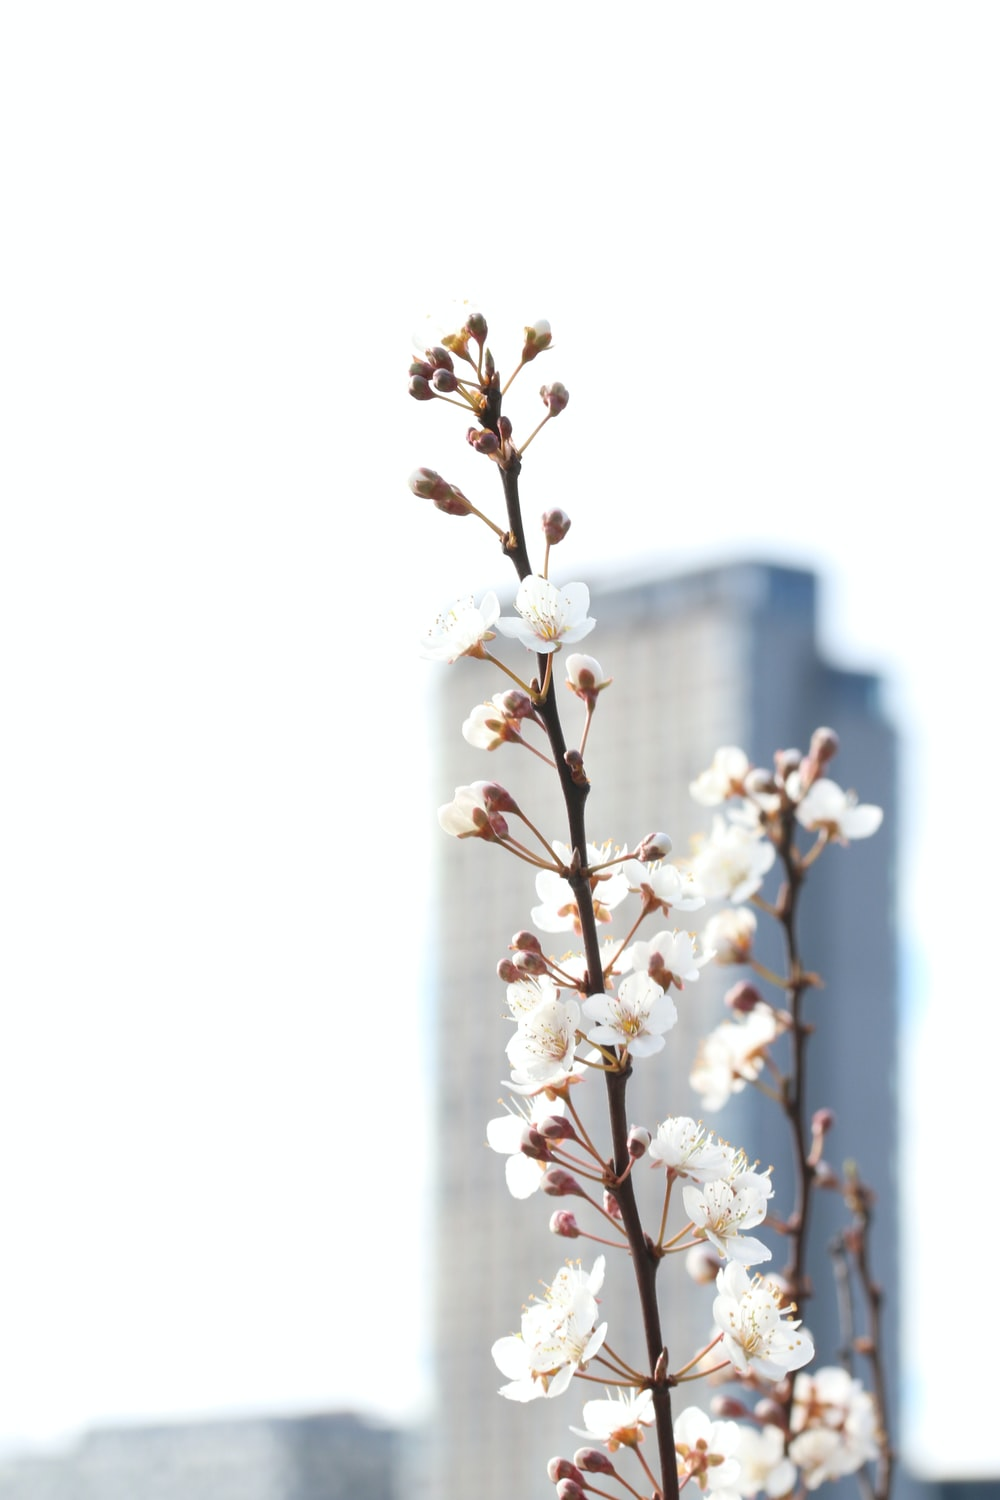 selective focus photography of white cherry blossoms during daytime